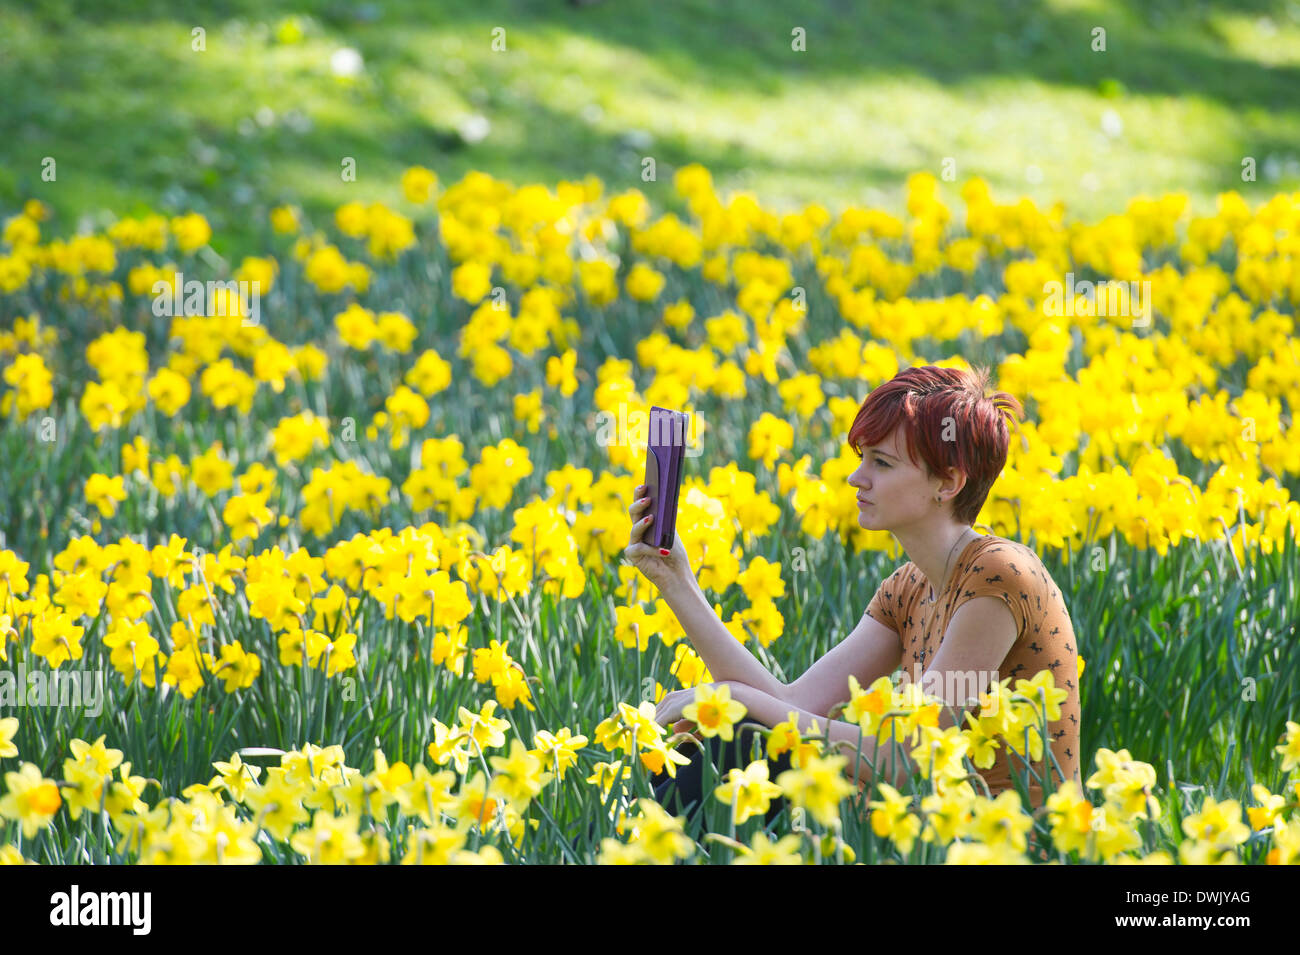 A girl reads an Ebook in the countryside surrounded by daffodils Stock Photo